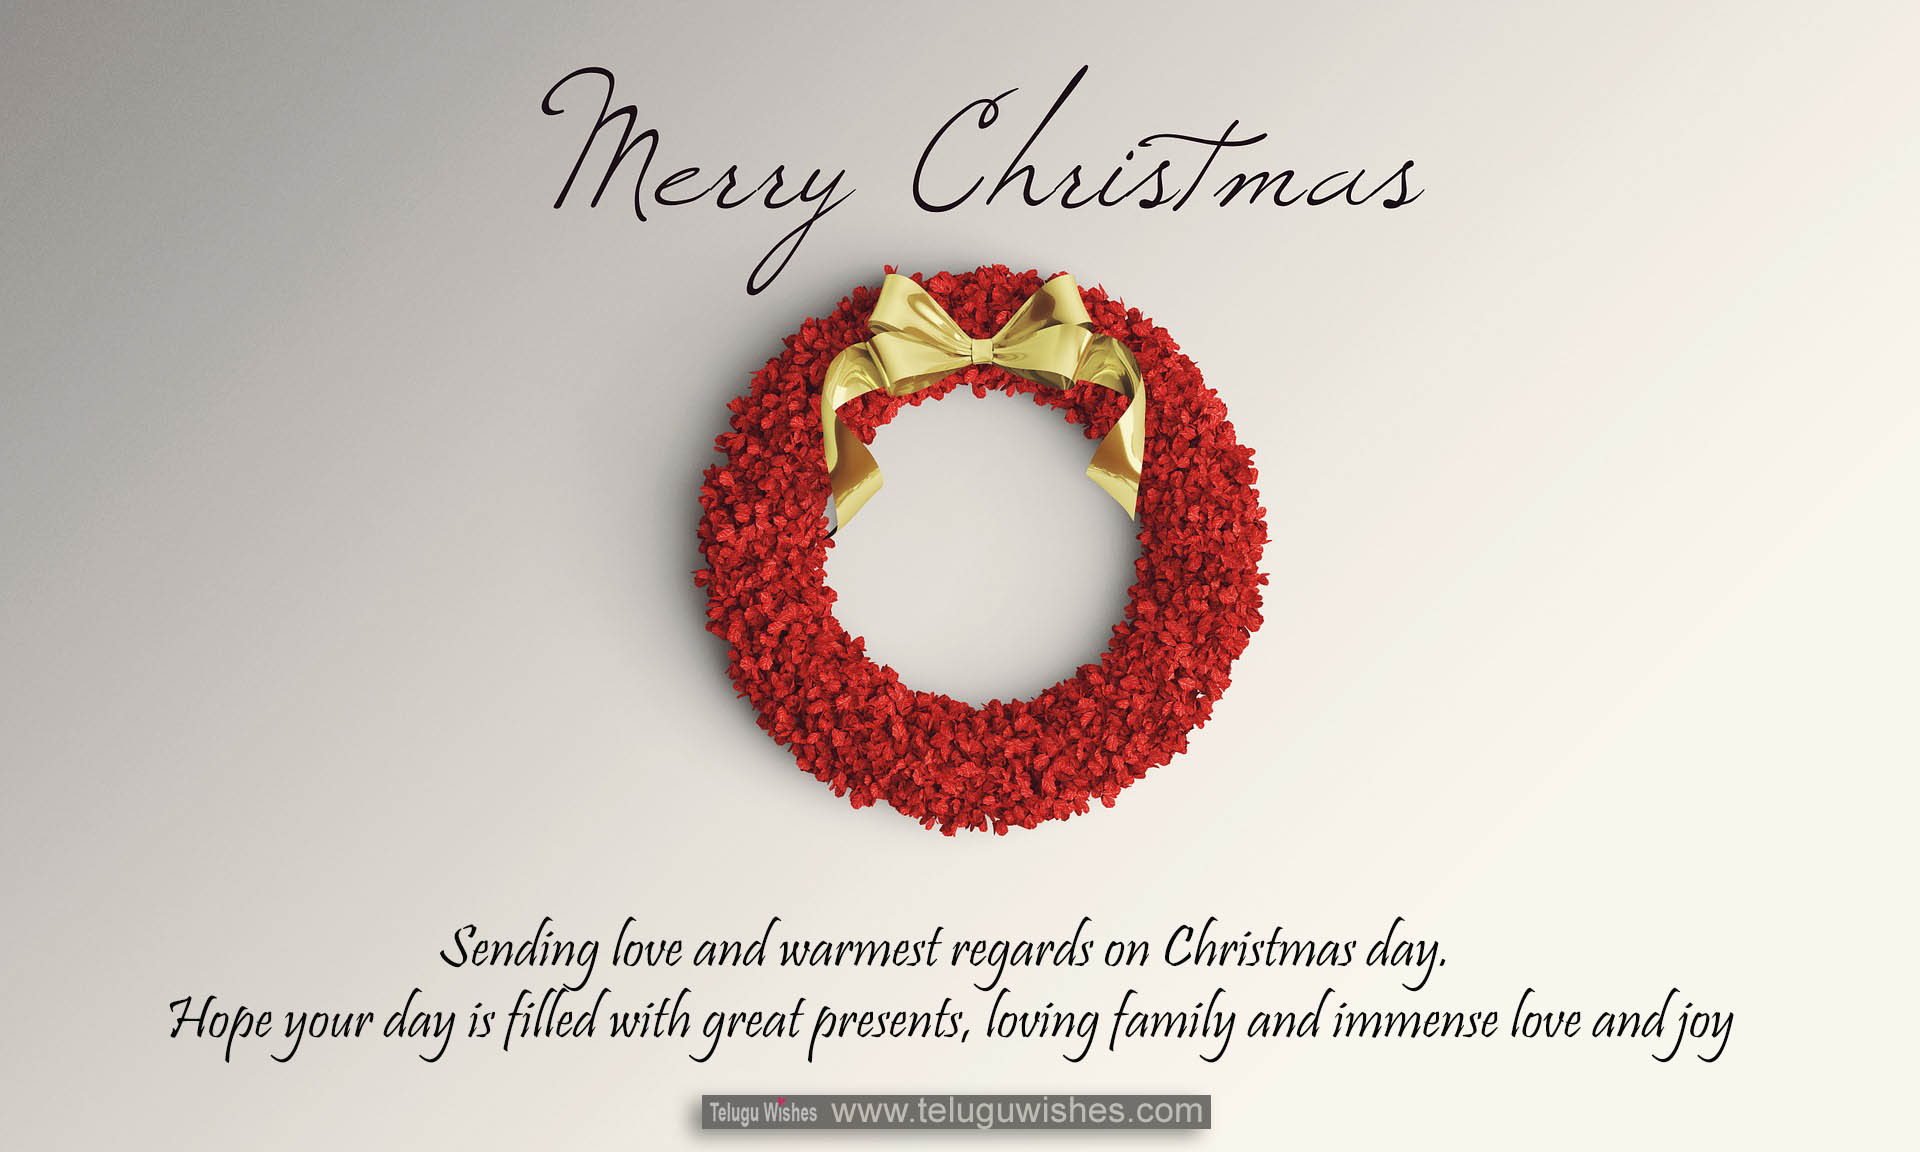 Merry Christmas wishes images for friends